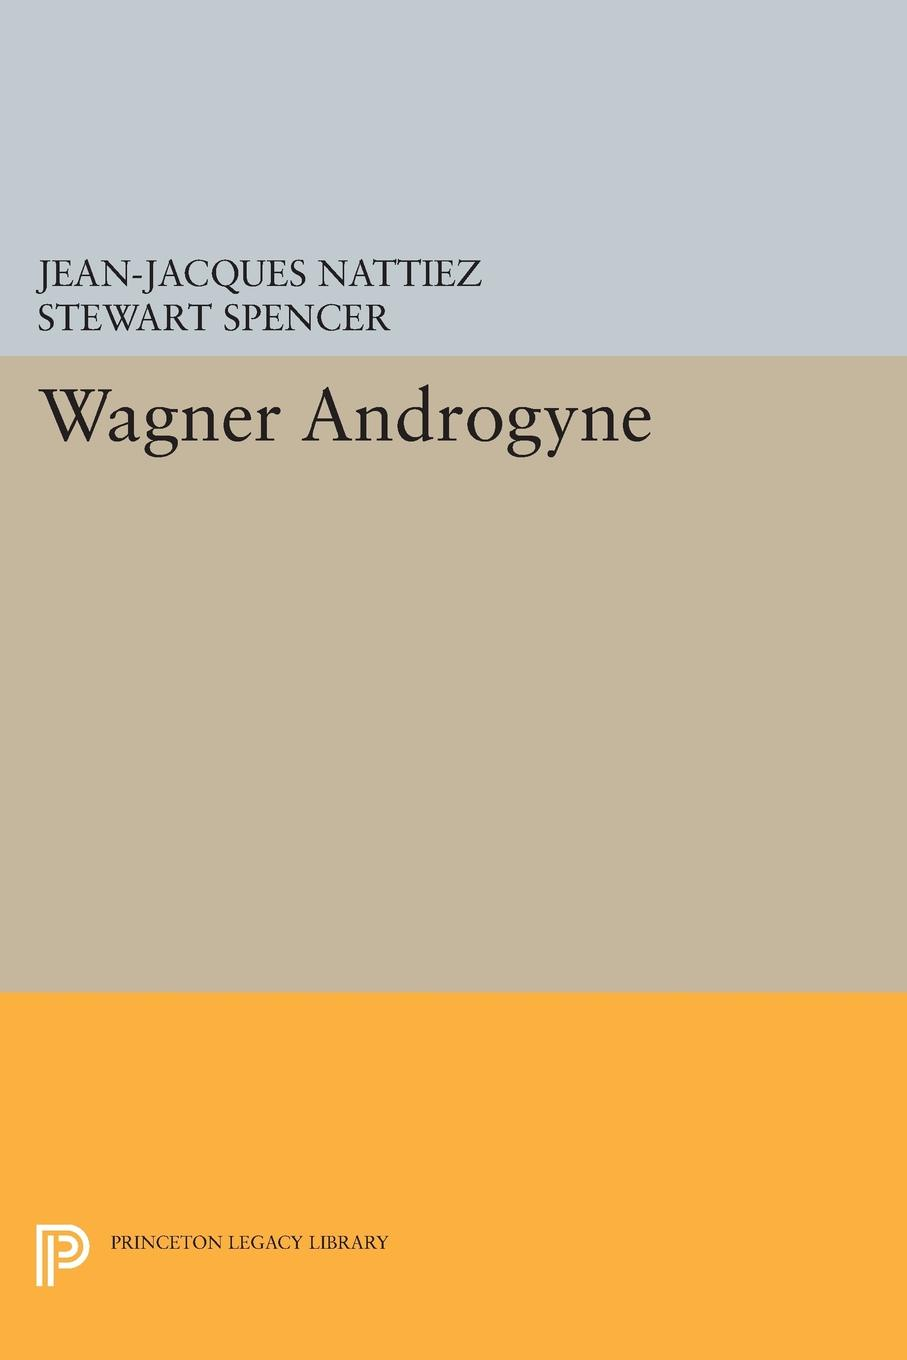 Jean-Jacques Nattiez, Stewart Spencer Wagner Androgyne heinrich wilsing richard wagner the mastersingers of nurnberg a guide to the music and the drama